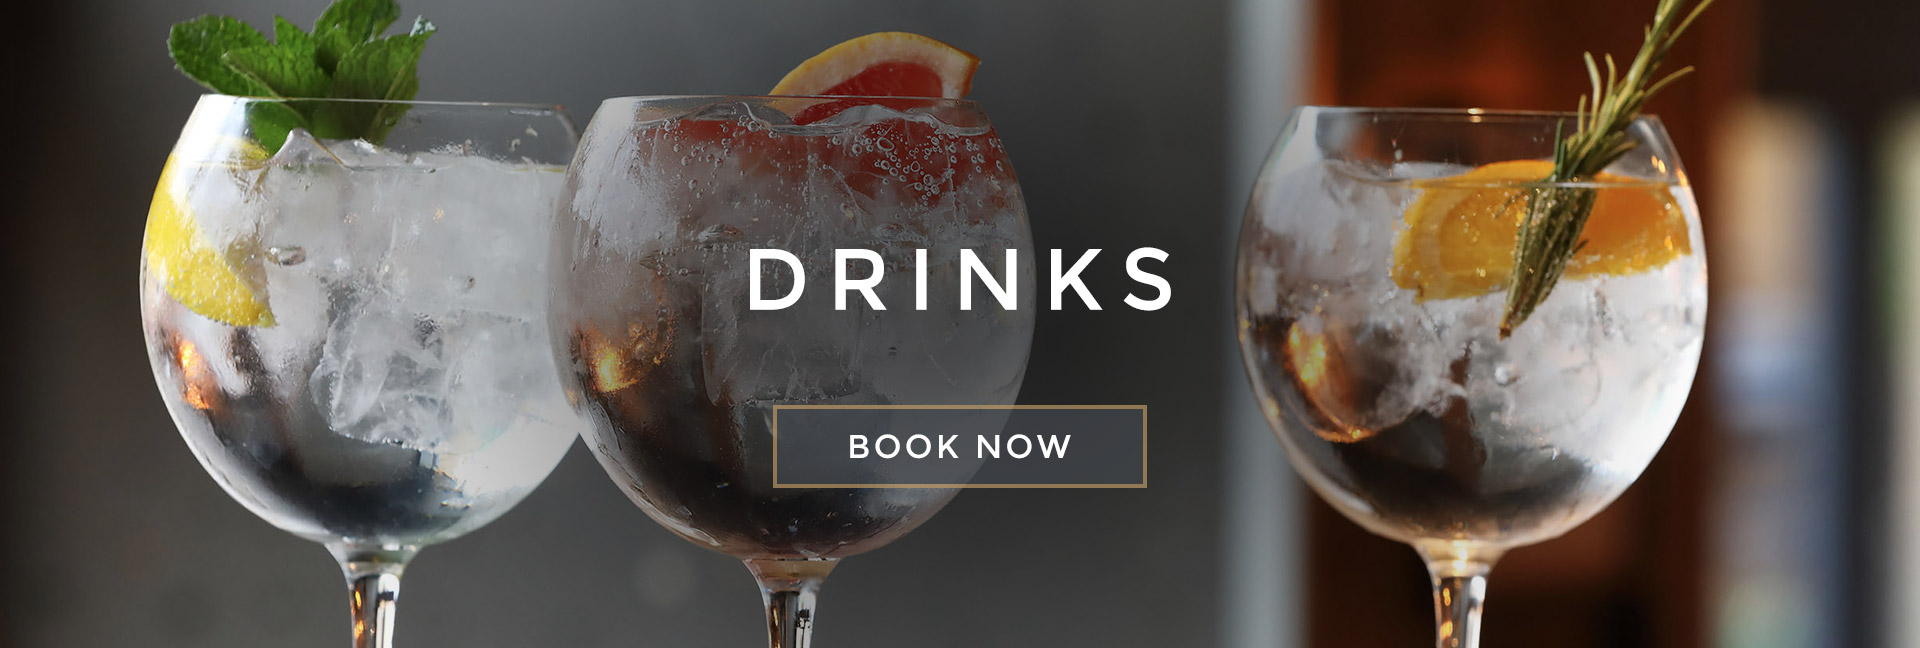 Drinks at All Bar One Ludgate Hill - Book your table